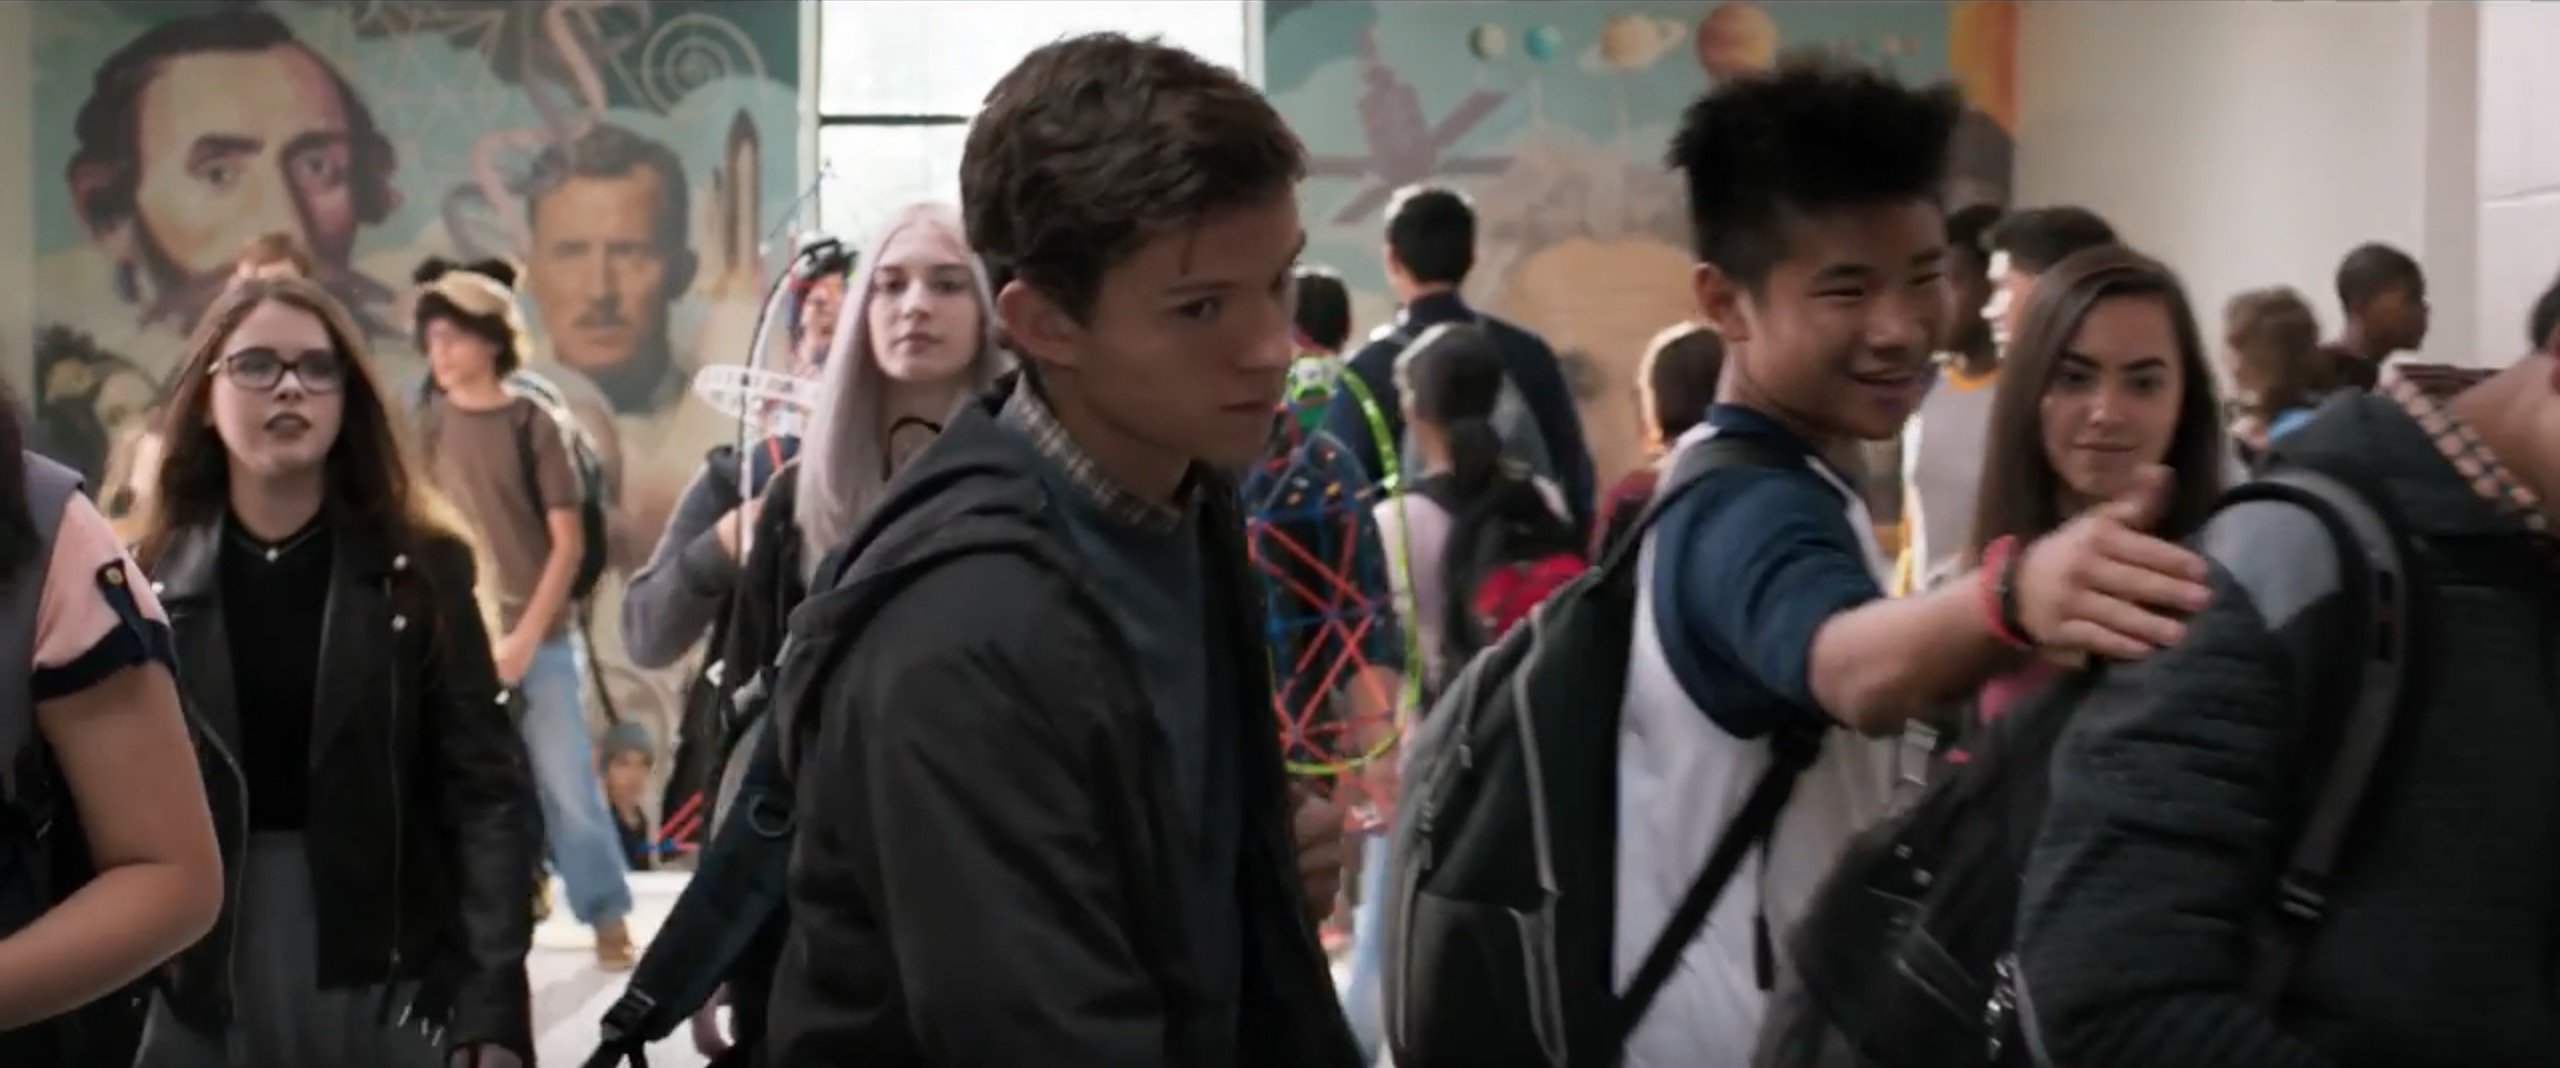 Movies About Kids In High School